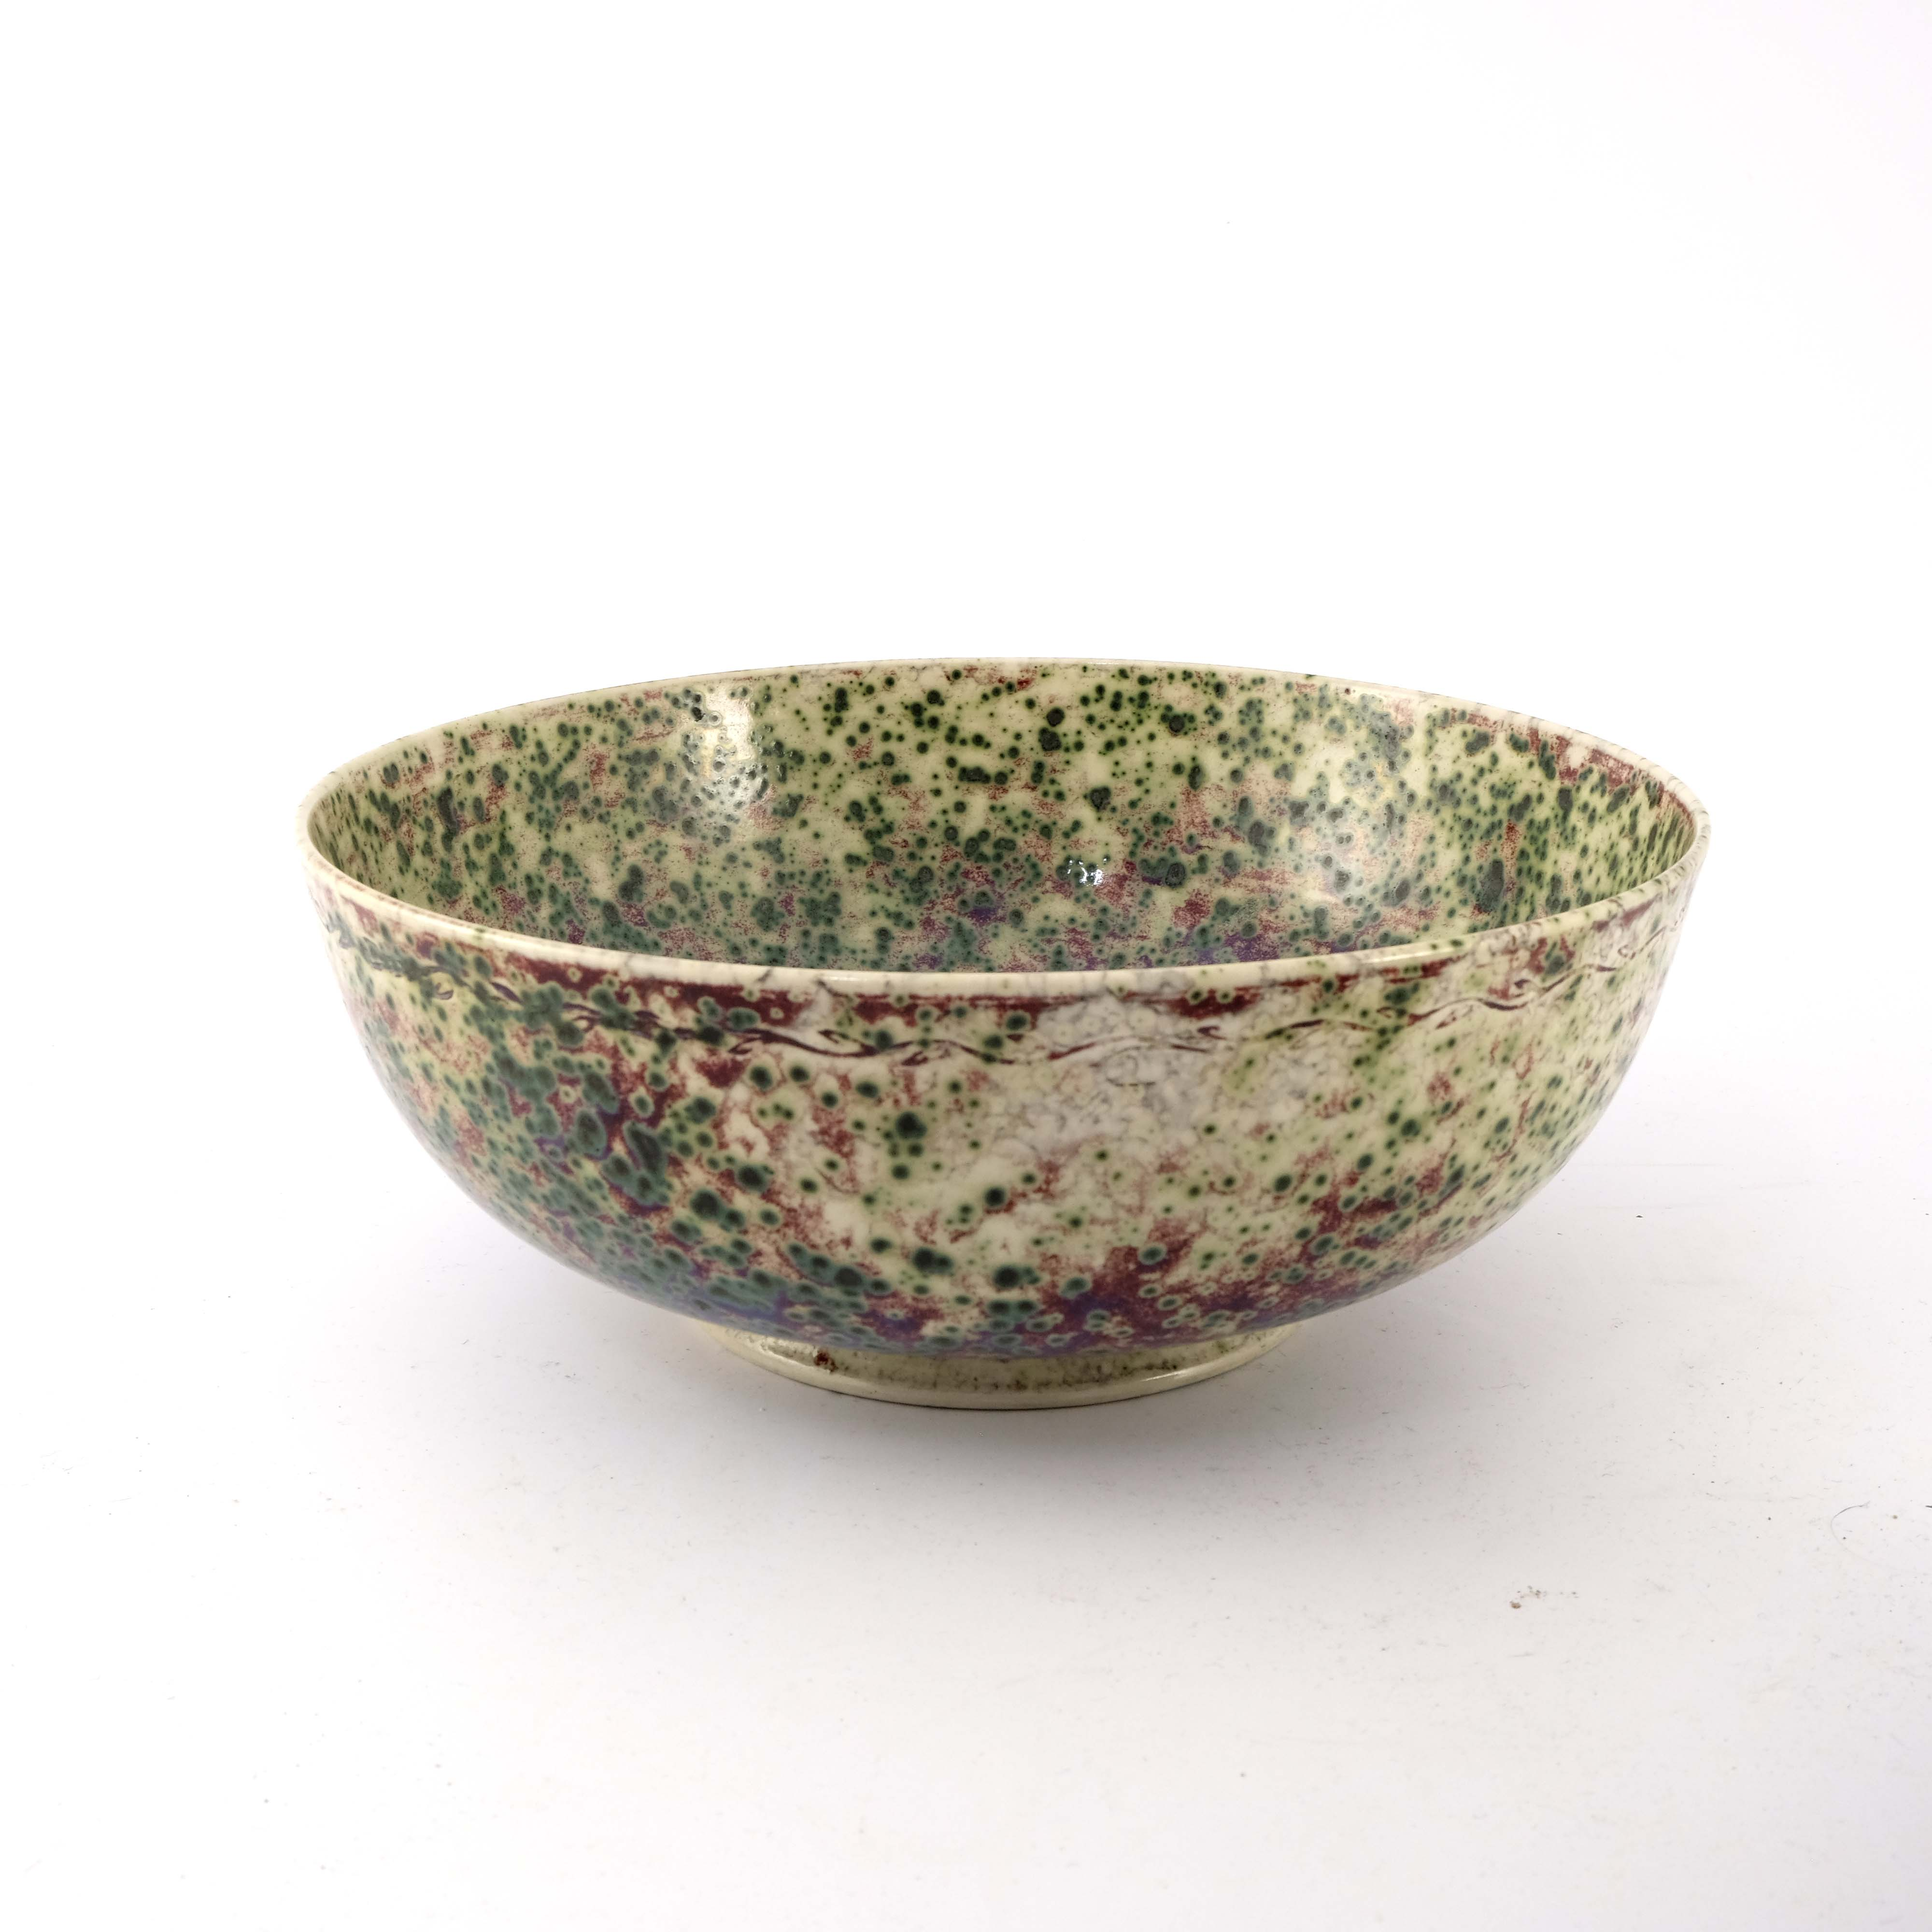 Ruskin Pottery, a High Fired bowl - Image 3 of 6